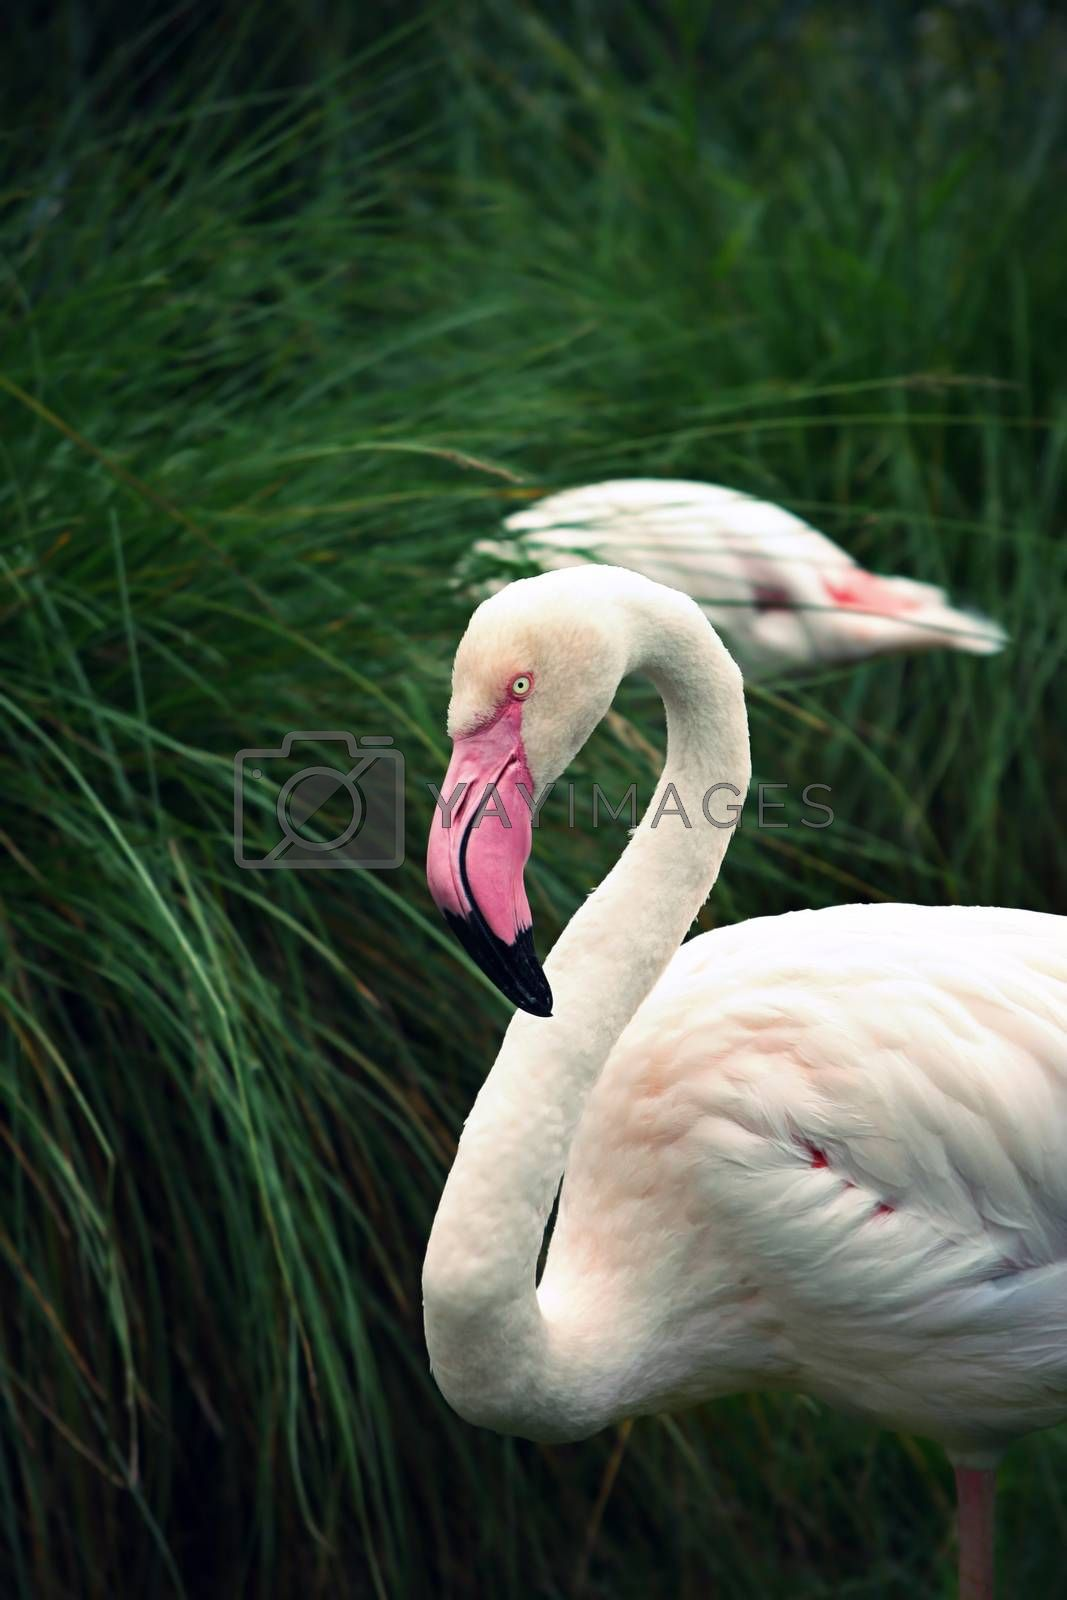 Vintage photo of Greater Flamingo (Phoenicopterus roseus)